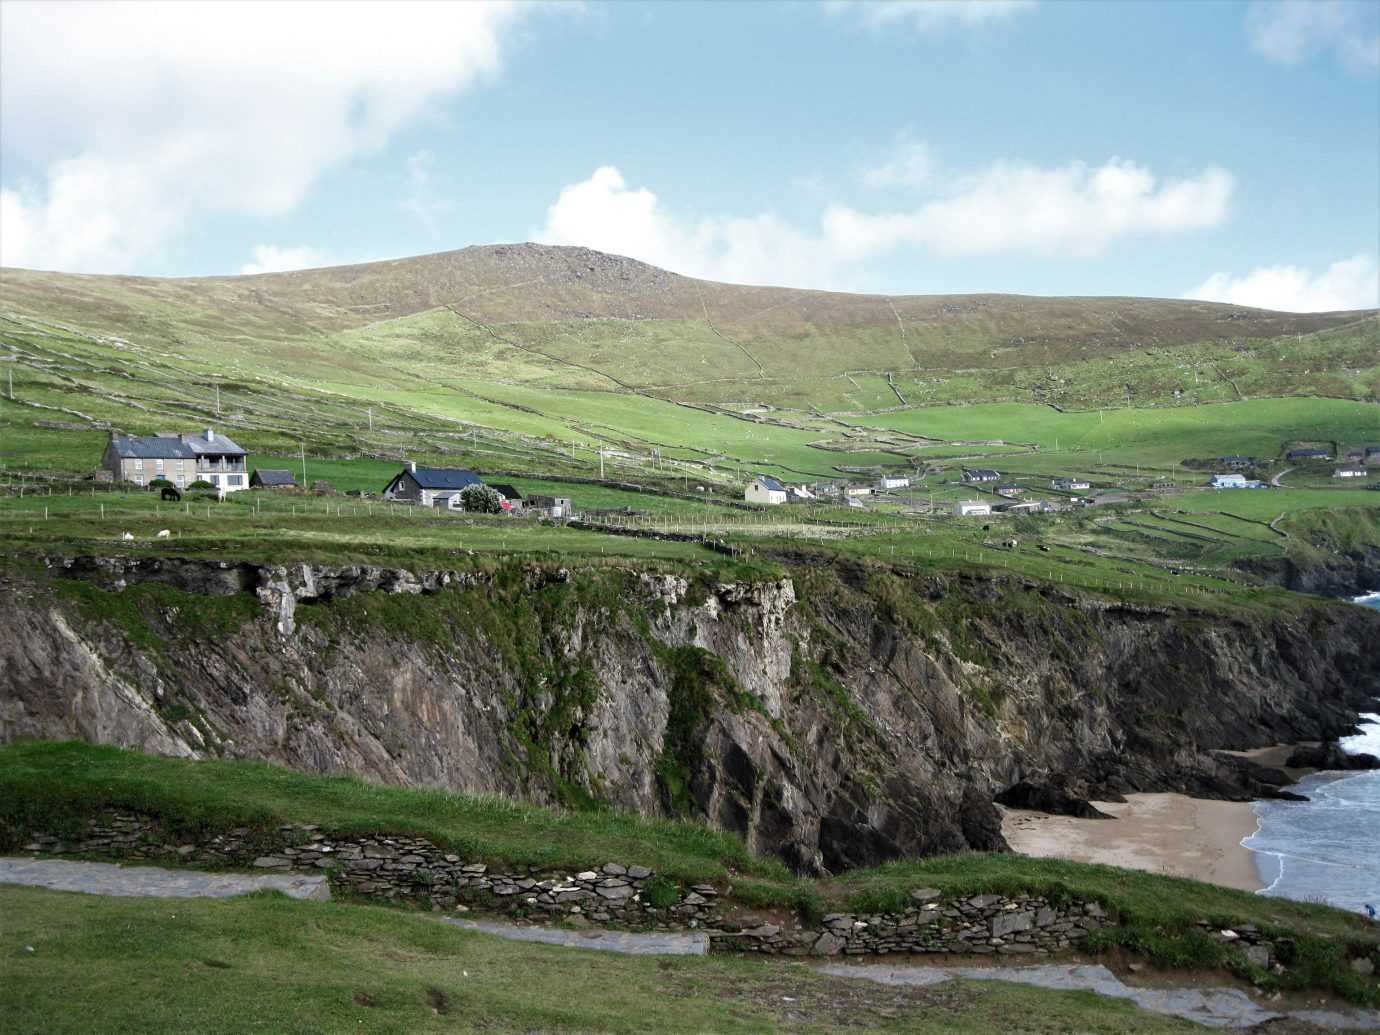 europe Hotels Ireland highland hill fell sky mountain Coast grass loch grassland terrain rural area water pasture landscape plateau cliff cloud escarpment ecoregion geology tundra rock reservoir fjord Lake plain